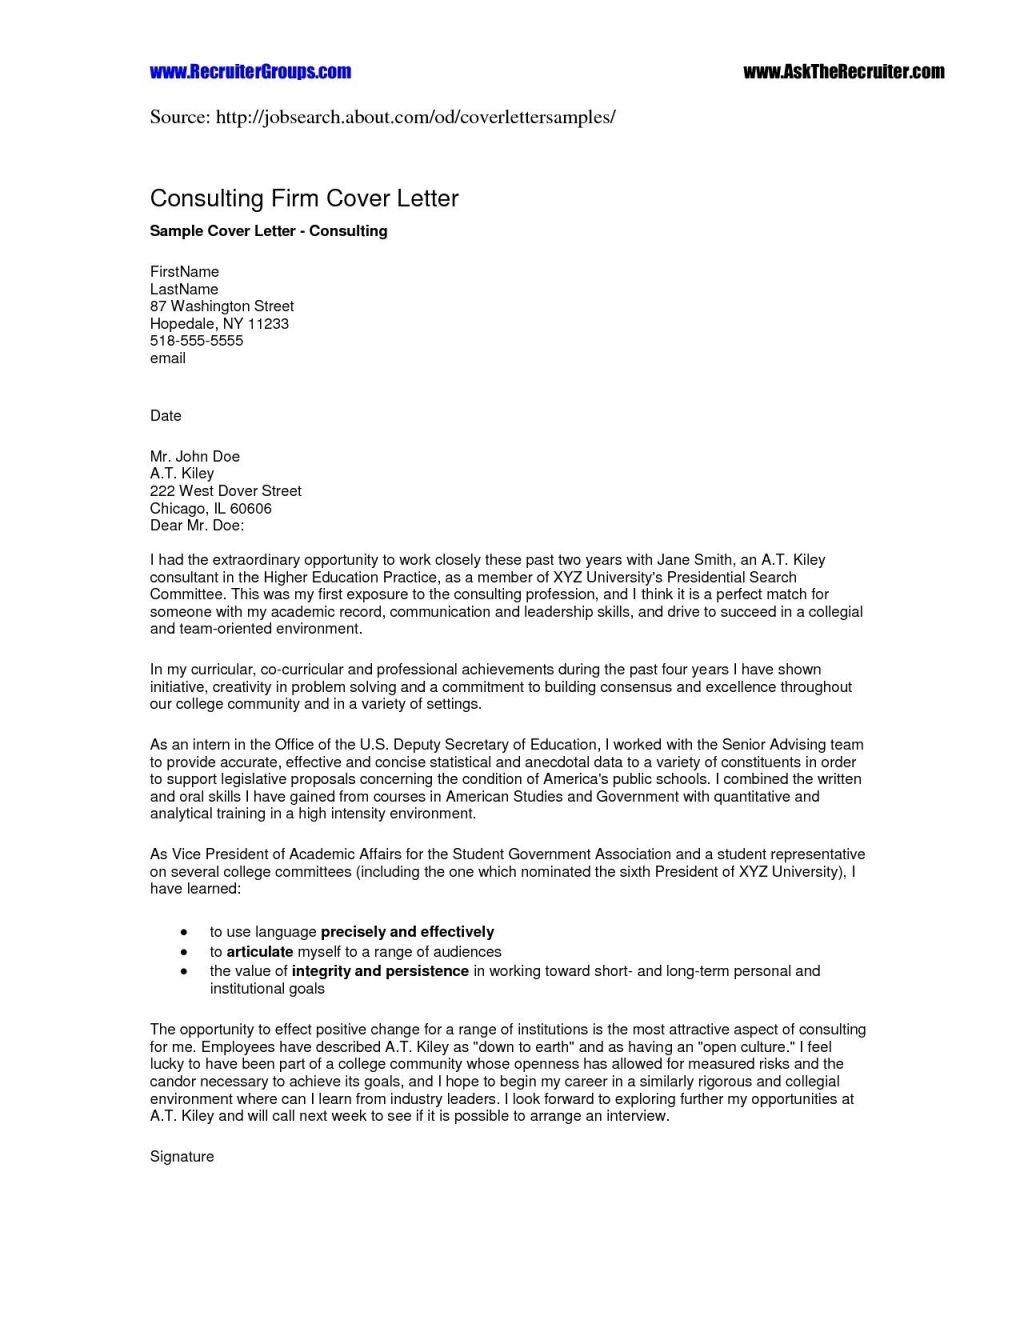 debt collection letter template Collection-debt collection letter template popular debt collection dispute letter unique debt collector cover letter sample debt collection letters uj9 16l 2-j